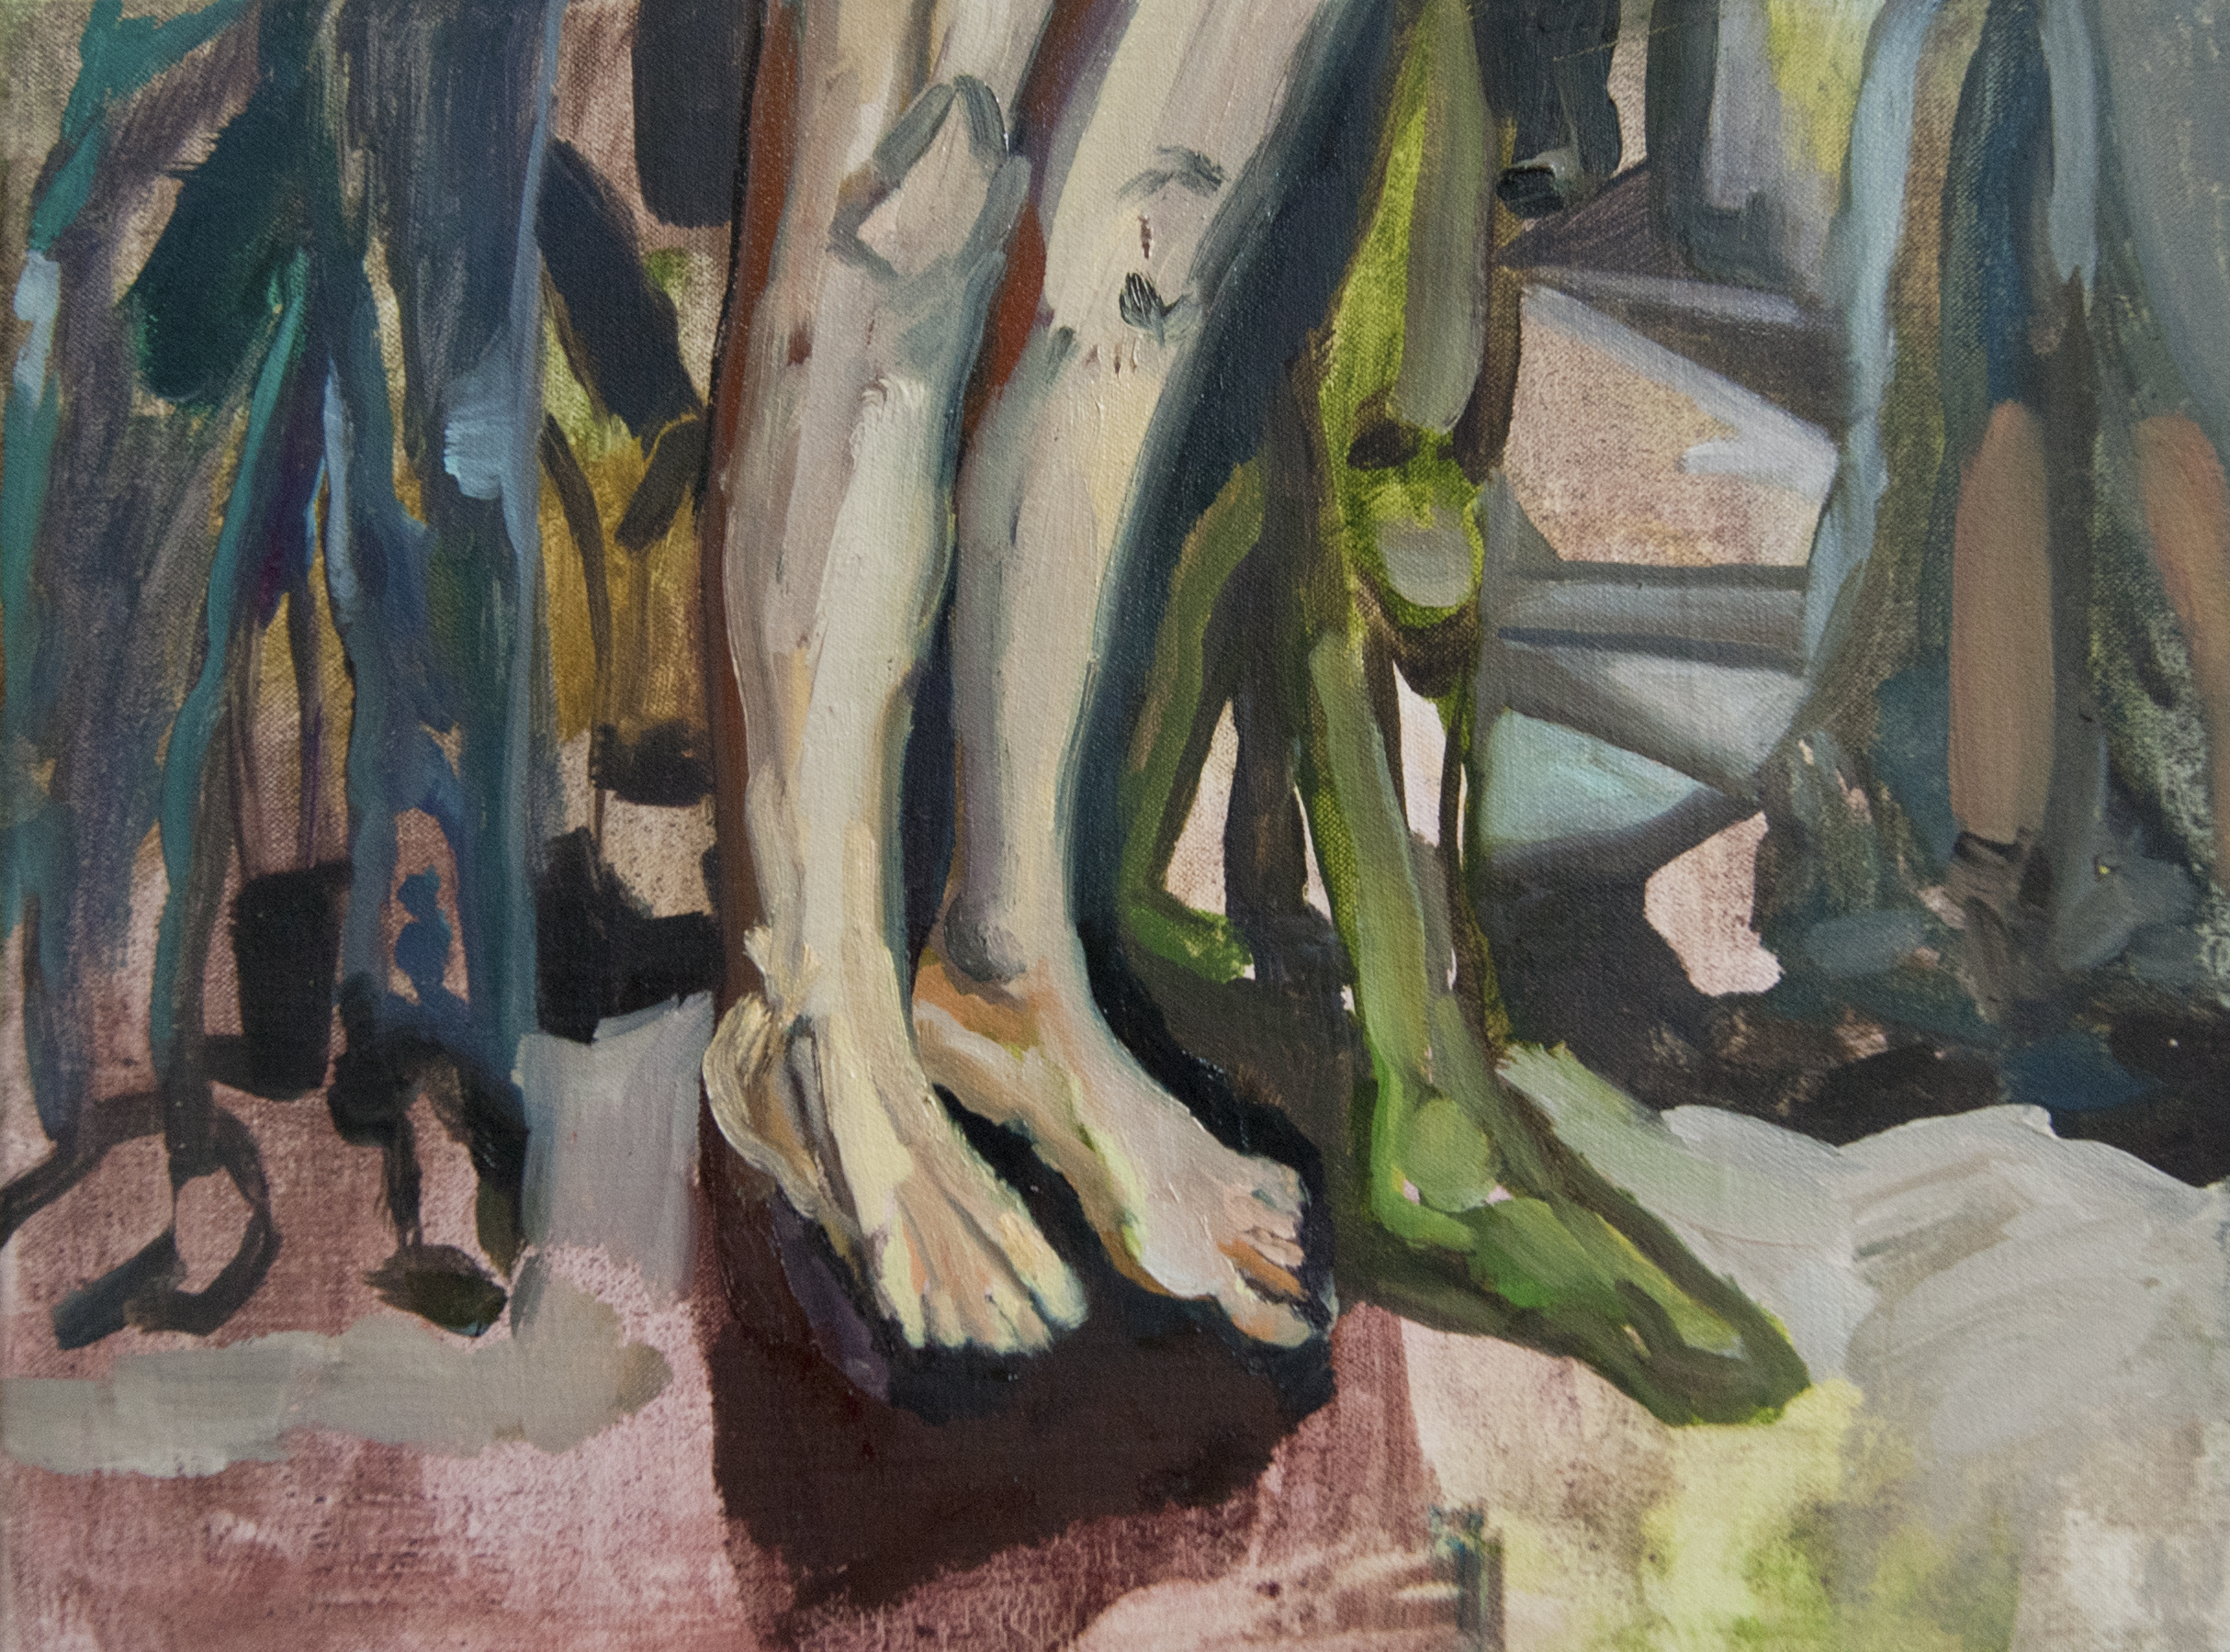 Belief in everything (superhero legs), 2013, oil on canvas, 12 x 16 inches.